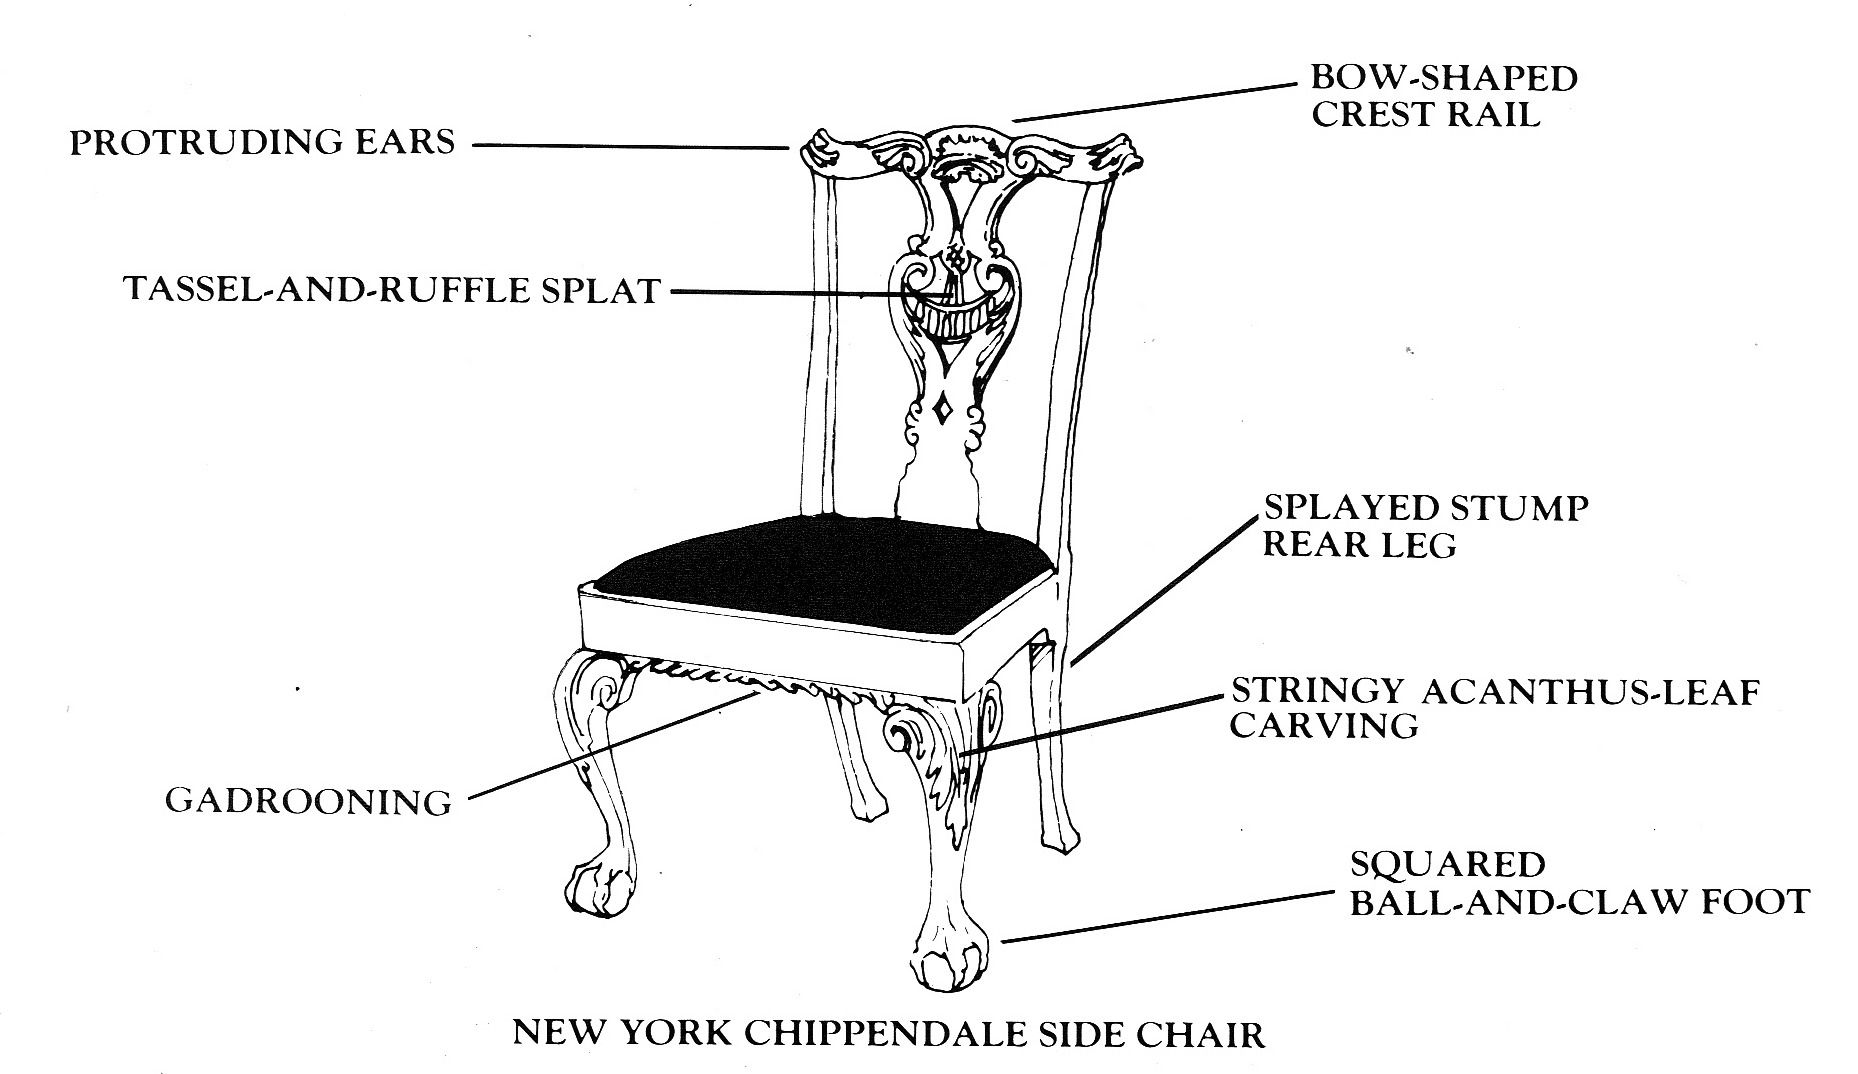 Chair antique queen anne chair the buzz on antiques antique chairs 101 - Diagram Of A Chippendale Side Chair 1755 1795 Tassel And Ruffle Splat Ny Modern Fireplaceantique Furnitureside